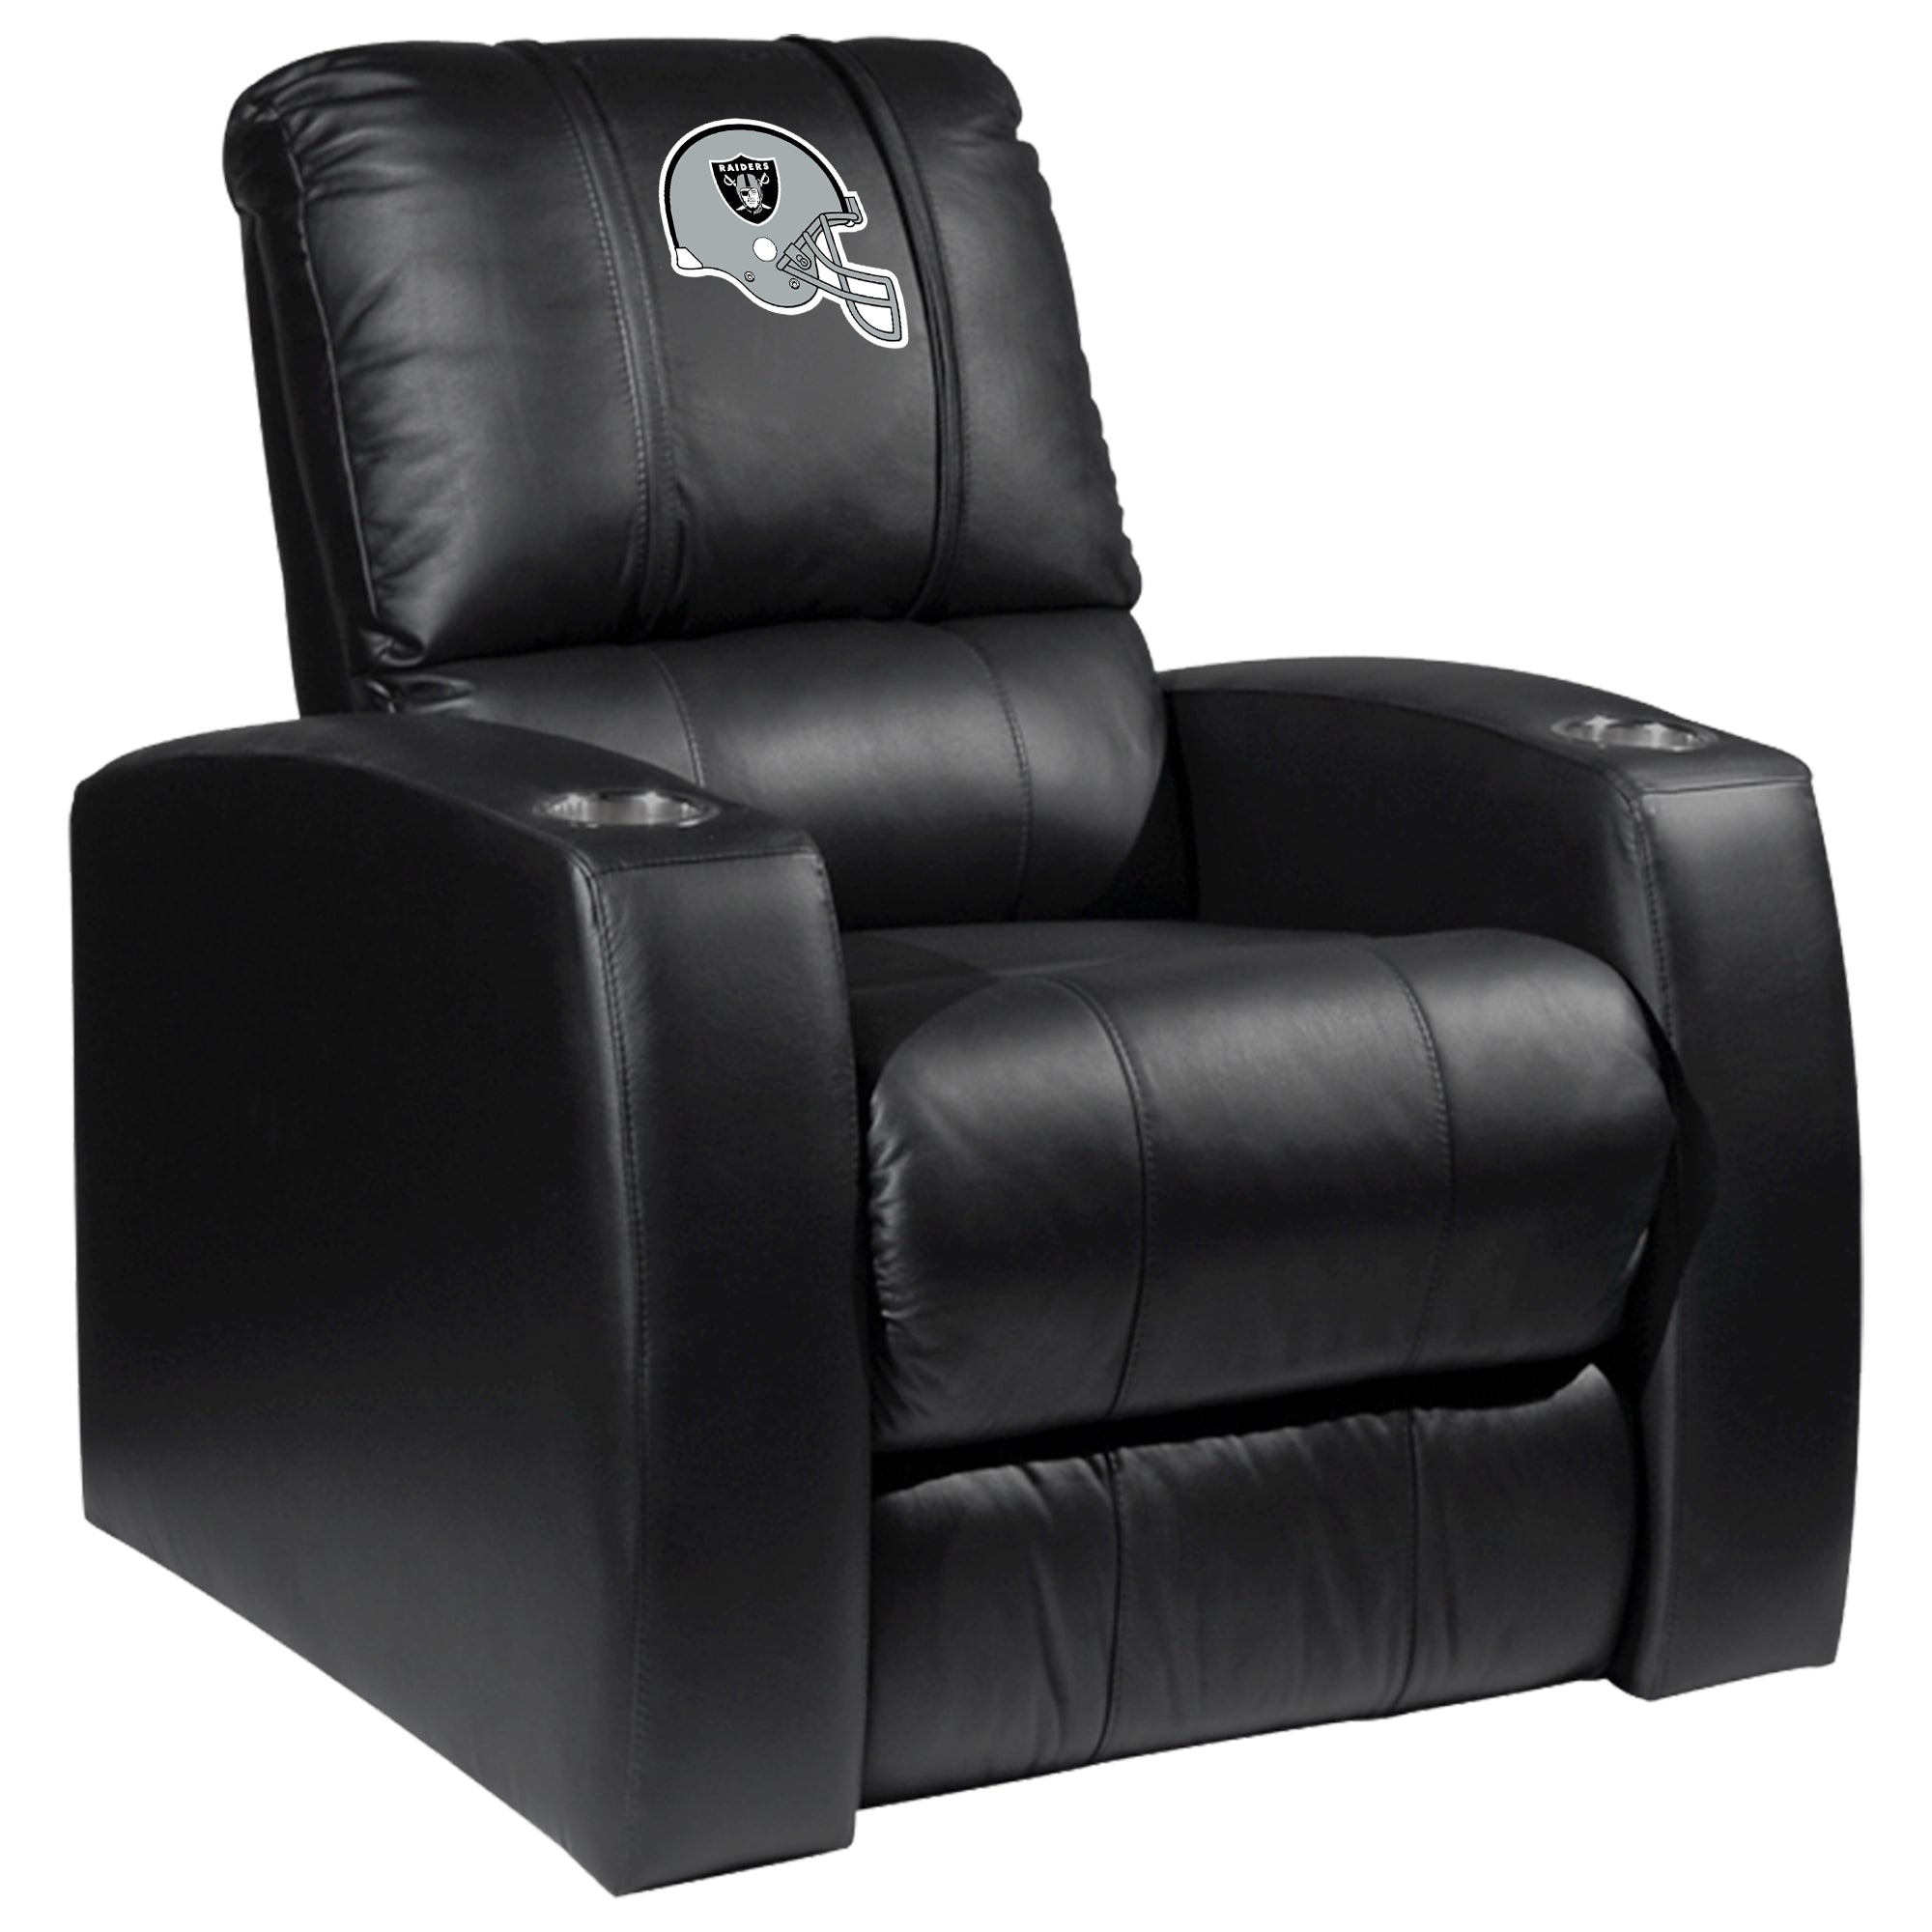 Relax Recliner with  Las Vegas Raiders Helmet Logo